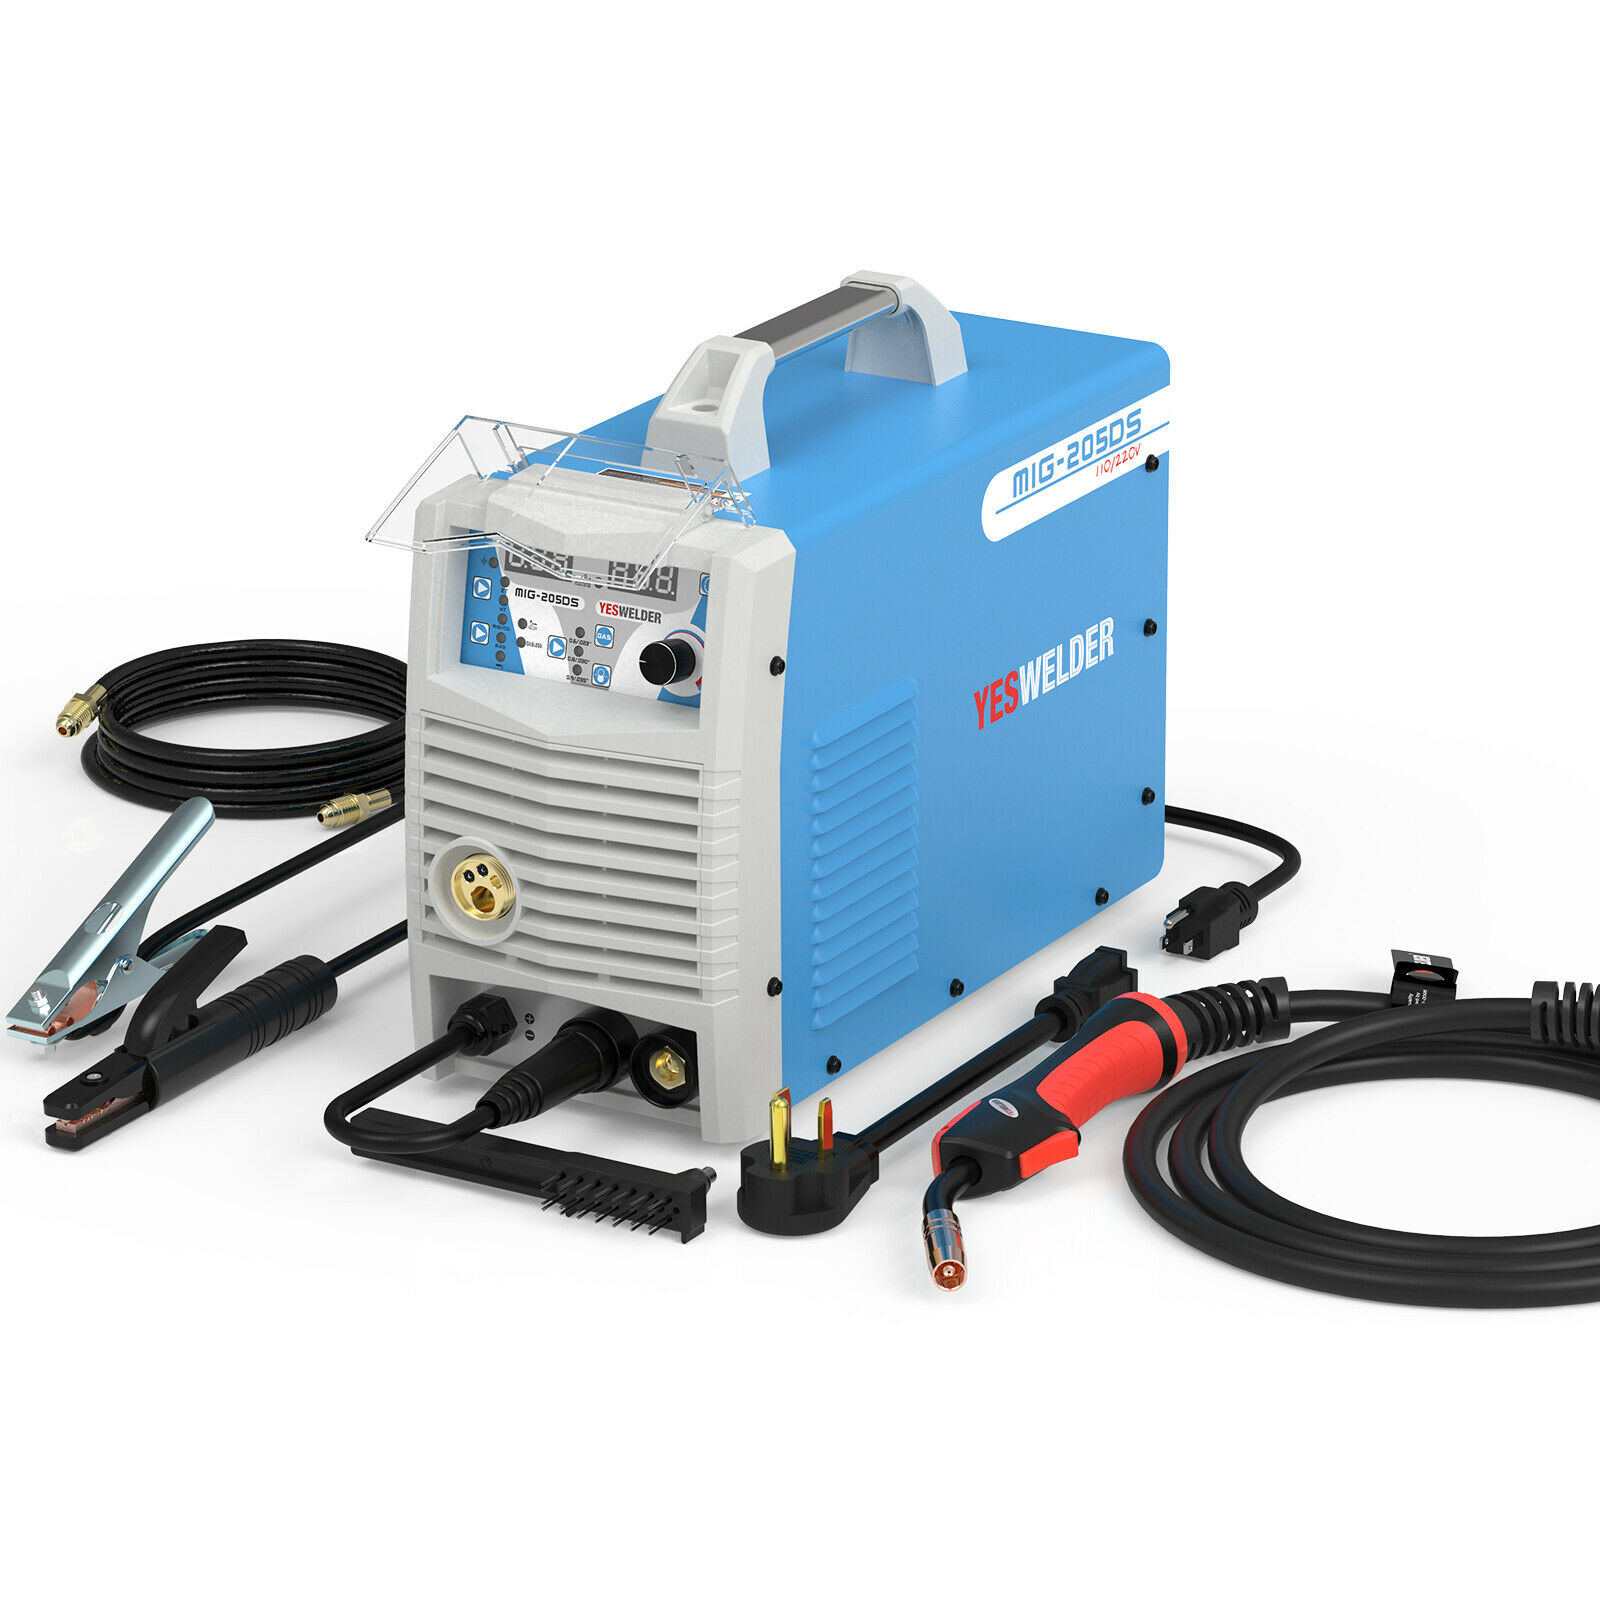 3in 1 MIG Welder 160A@ 110V/200A@220V MIG Lift TIG Stick Welding Machine. Buy it now for 335.39